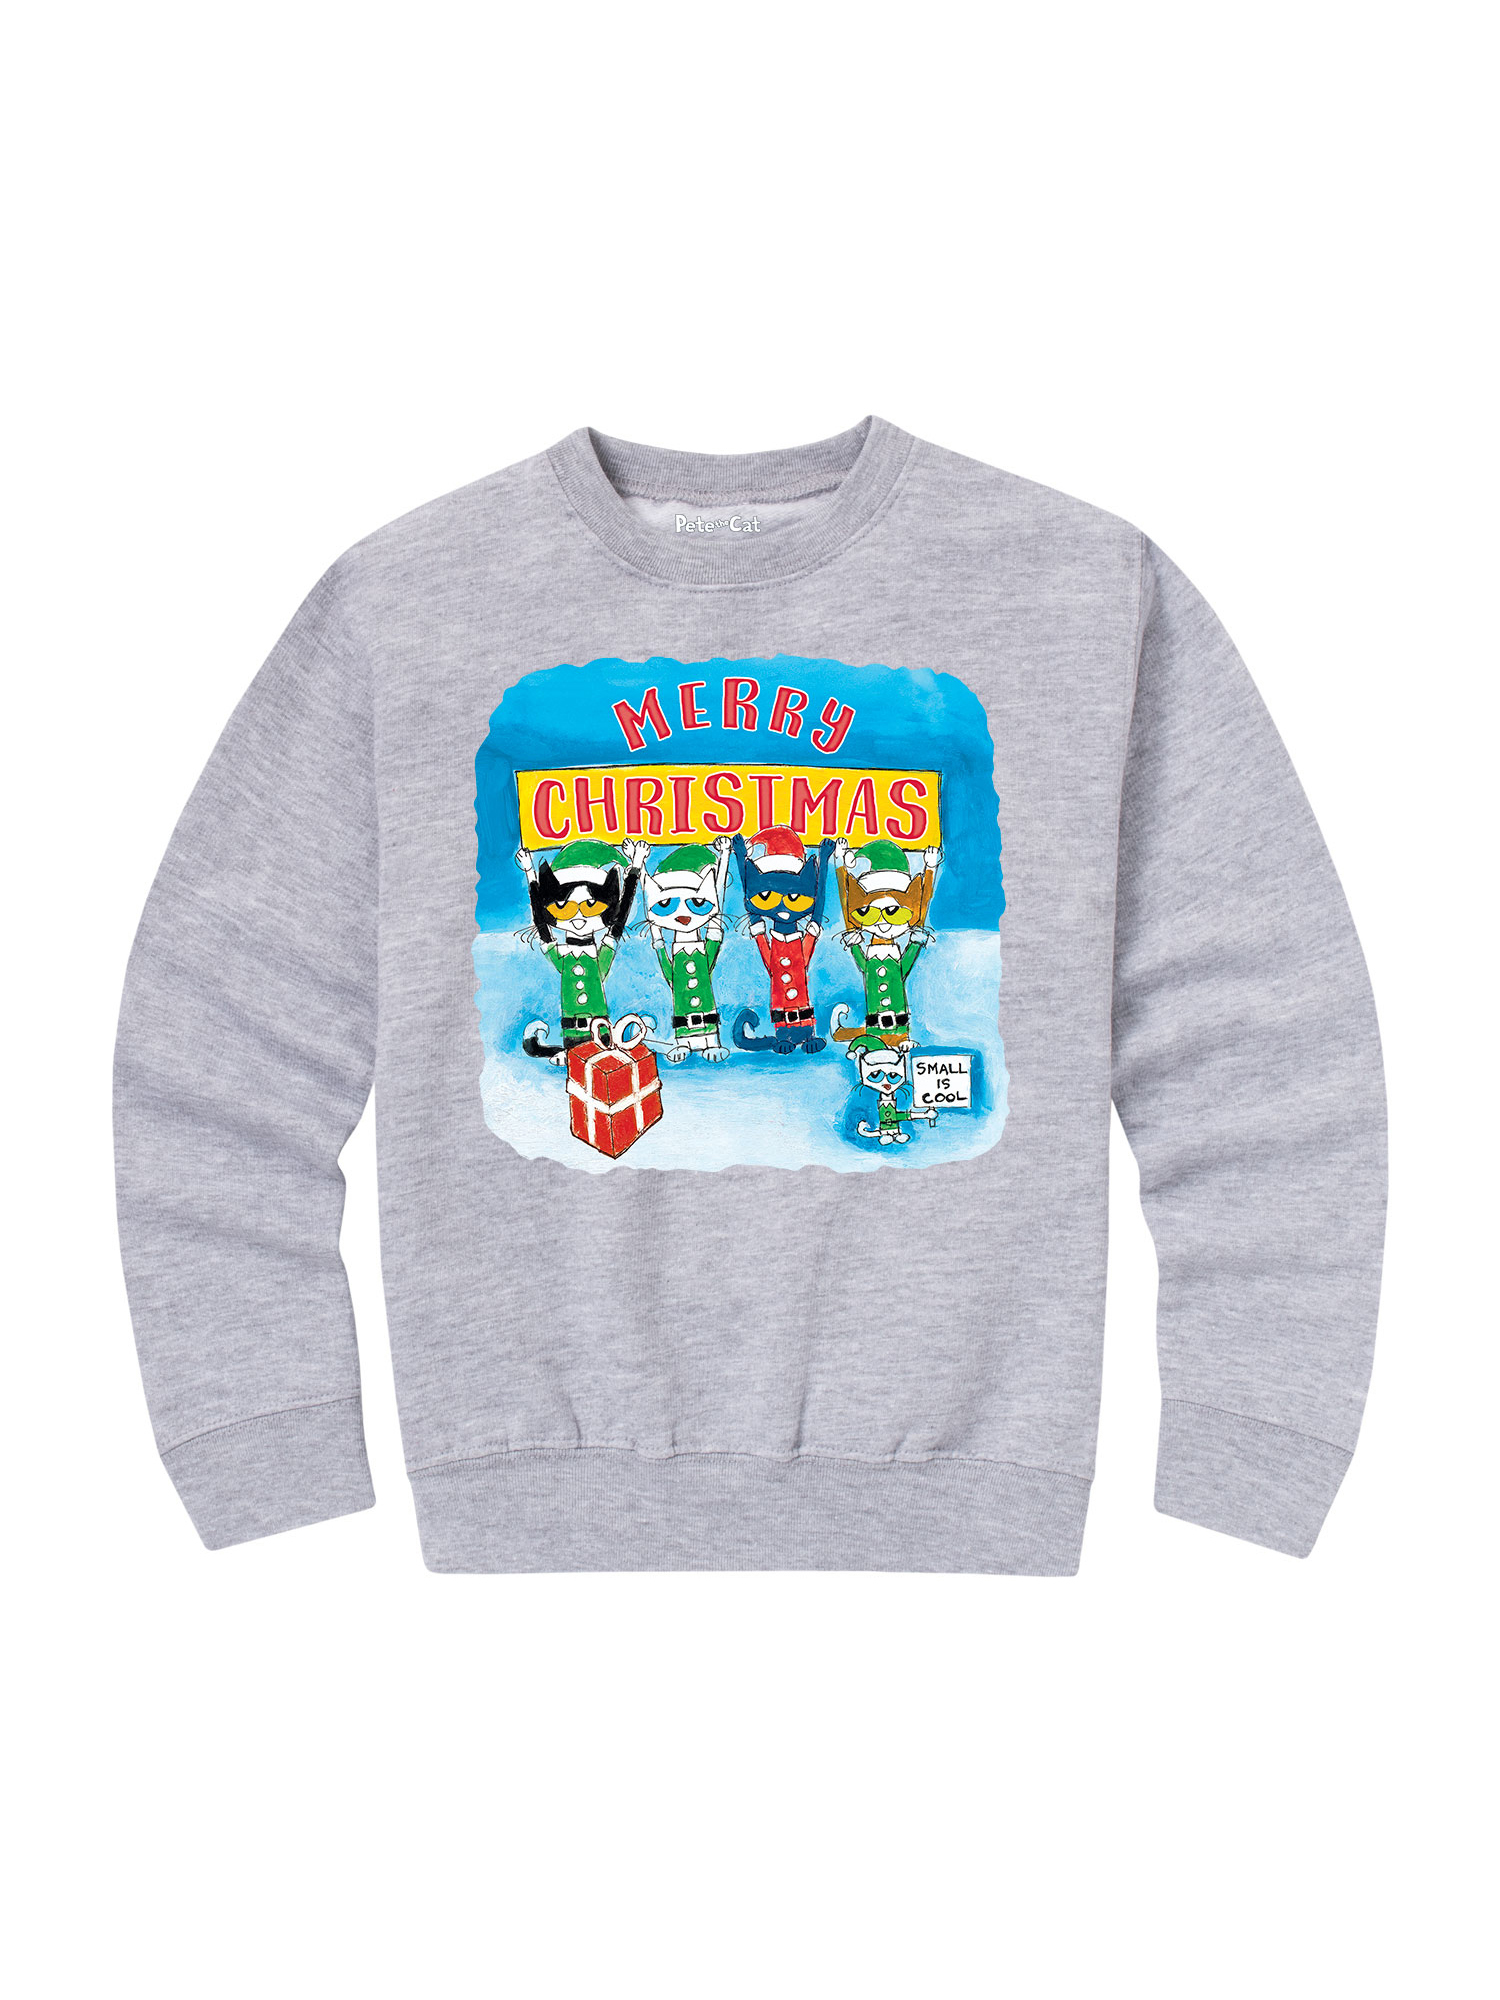 Ptc Merry Cristmas - Toddler Crew Fleece